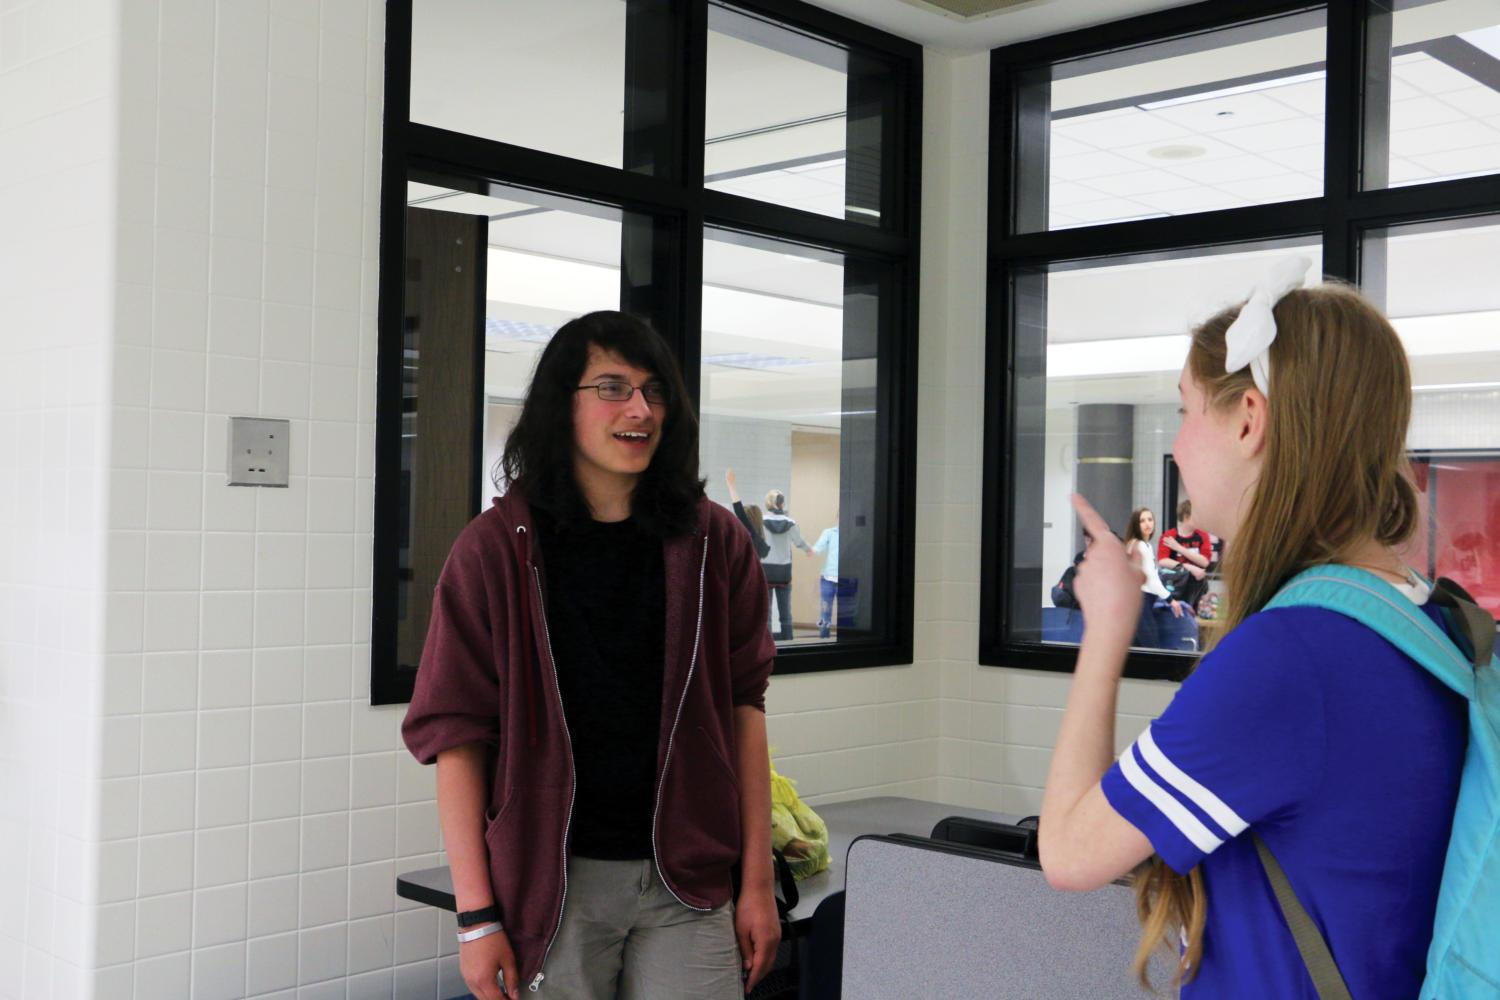 Robert Sanchez, new Goalball Club president and sophomore, talks with Alexandra Lawburg '17, former Goalball Club member and alumna, about club developments. Sanchez said, at some point, he wants the club to participate in a bigger goalball tournament this year.